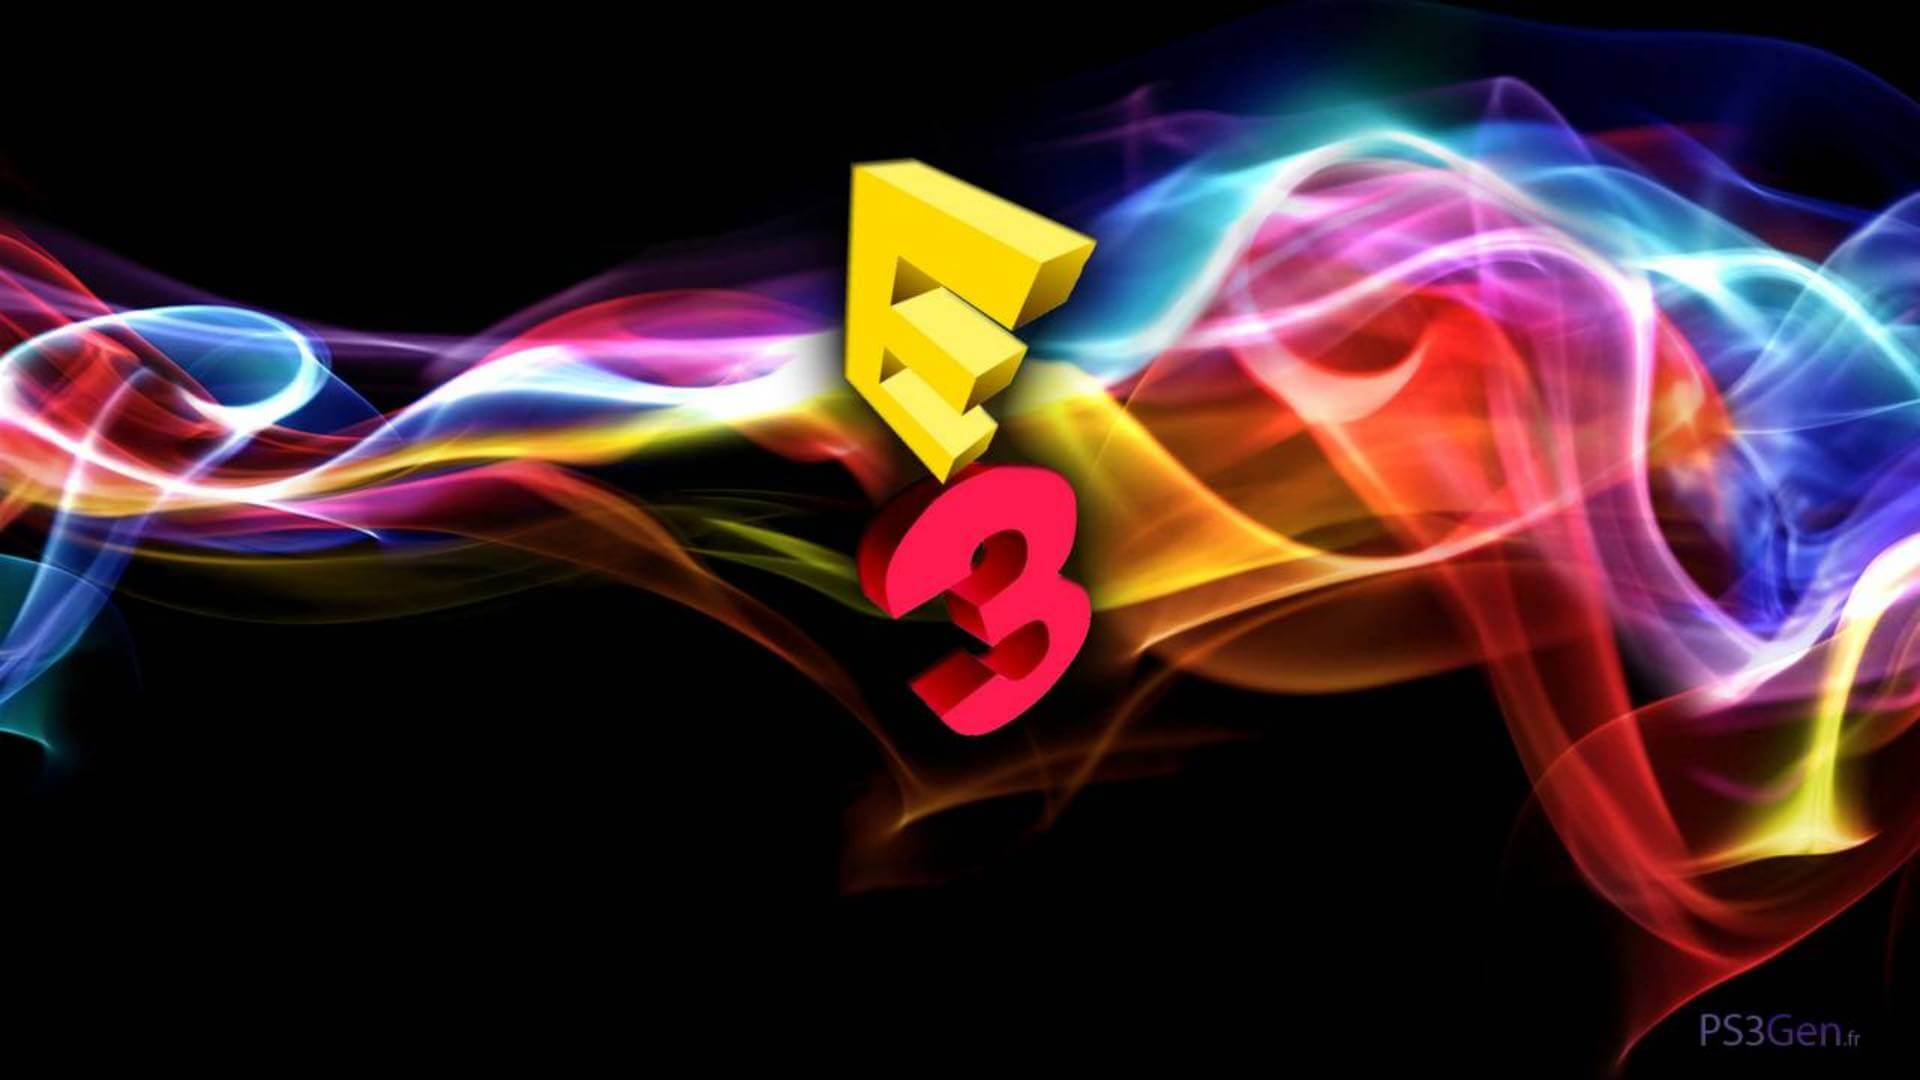 E3 2016: Conference Dates and Times